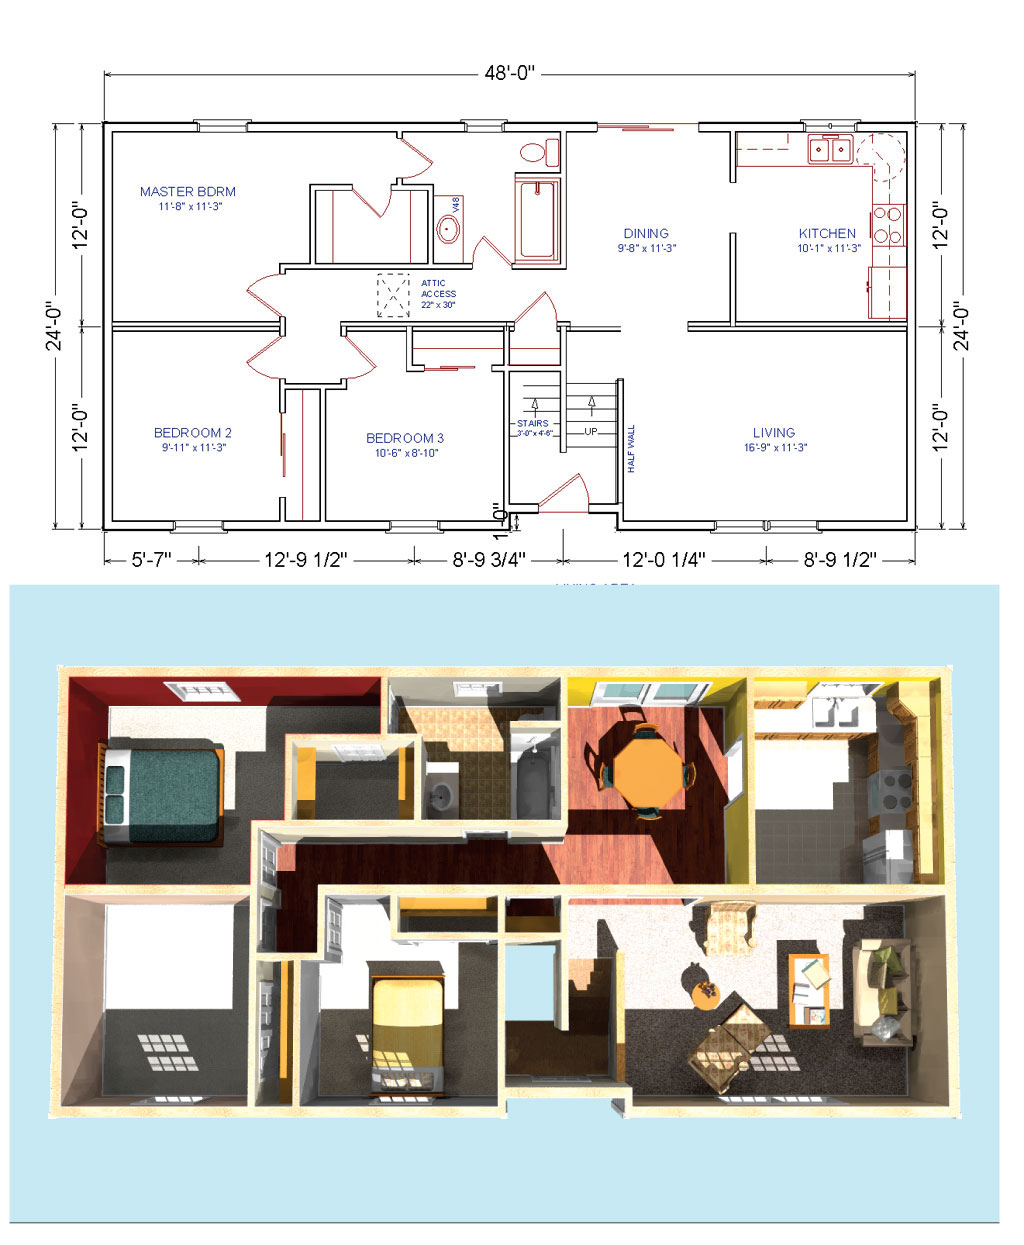 Raised ranch floor plans find house plans Floor plan search engine